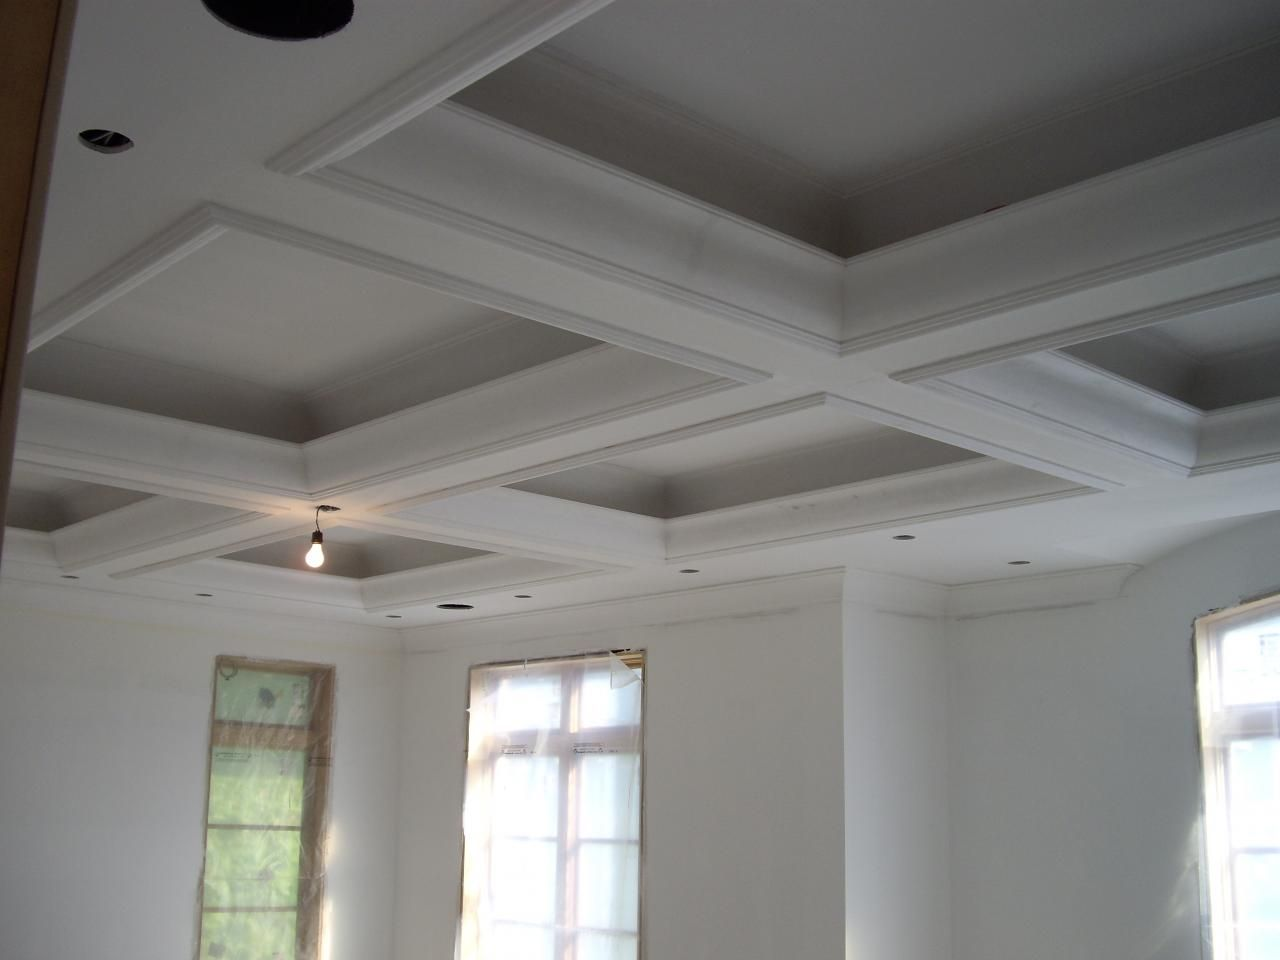 Bedroom Ceiling Moulding Moulding On Ceiling Empire Plaster Moulding Ceiling